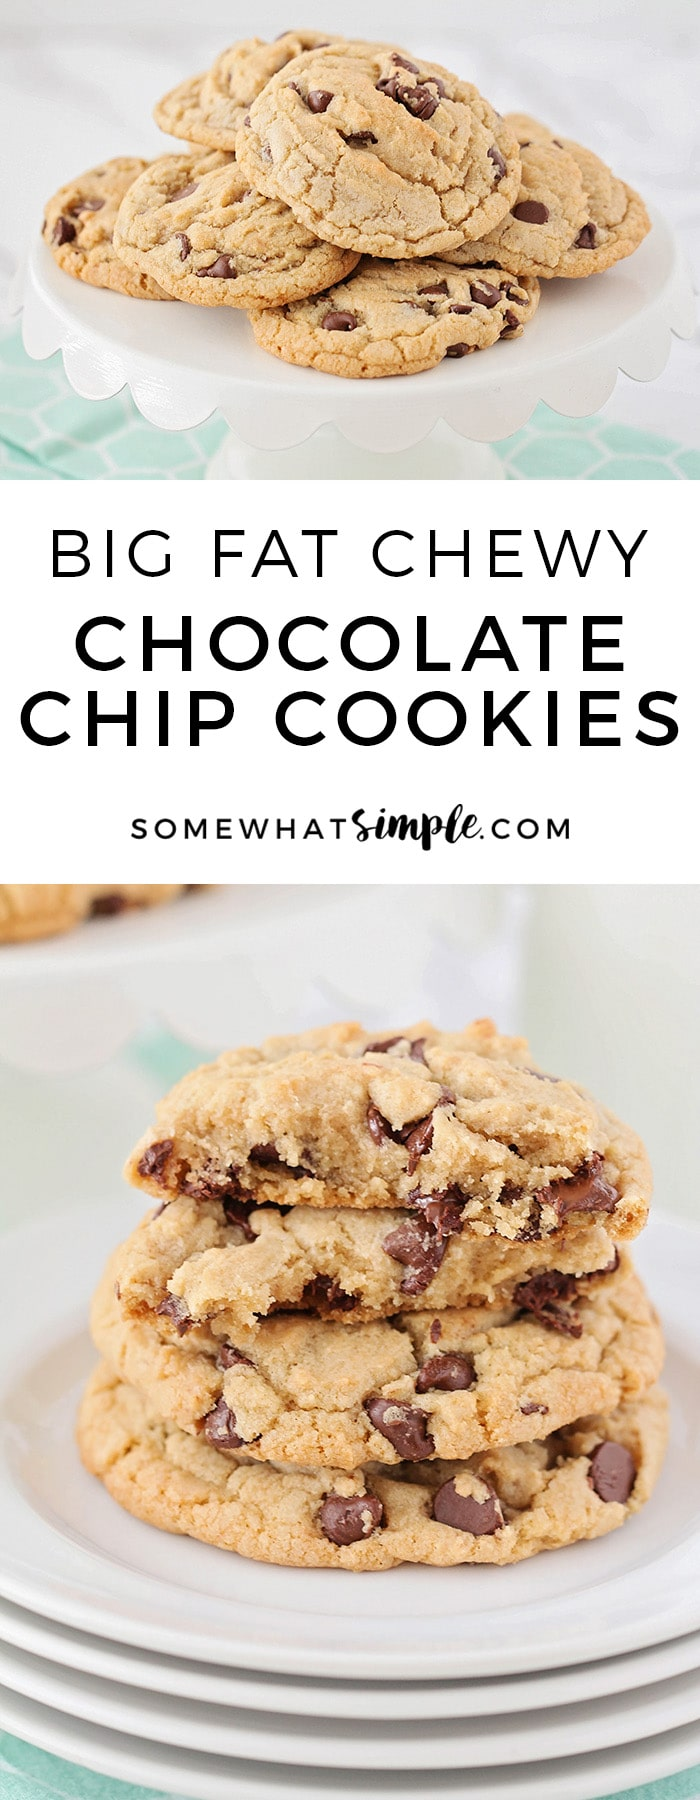 These chewy chocolate chip cookies are thick, soft and jam packed with chocolate chips! They are big and delicious and super simple to make!